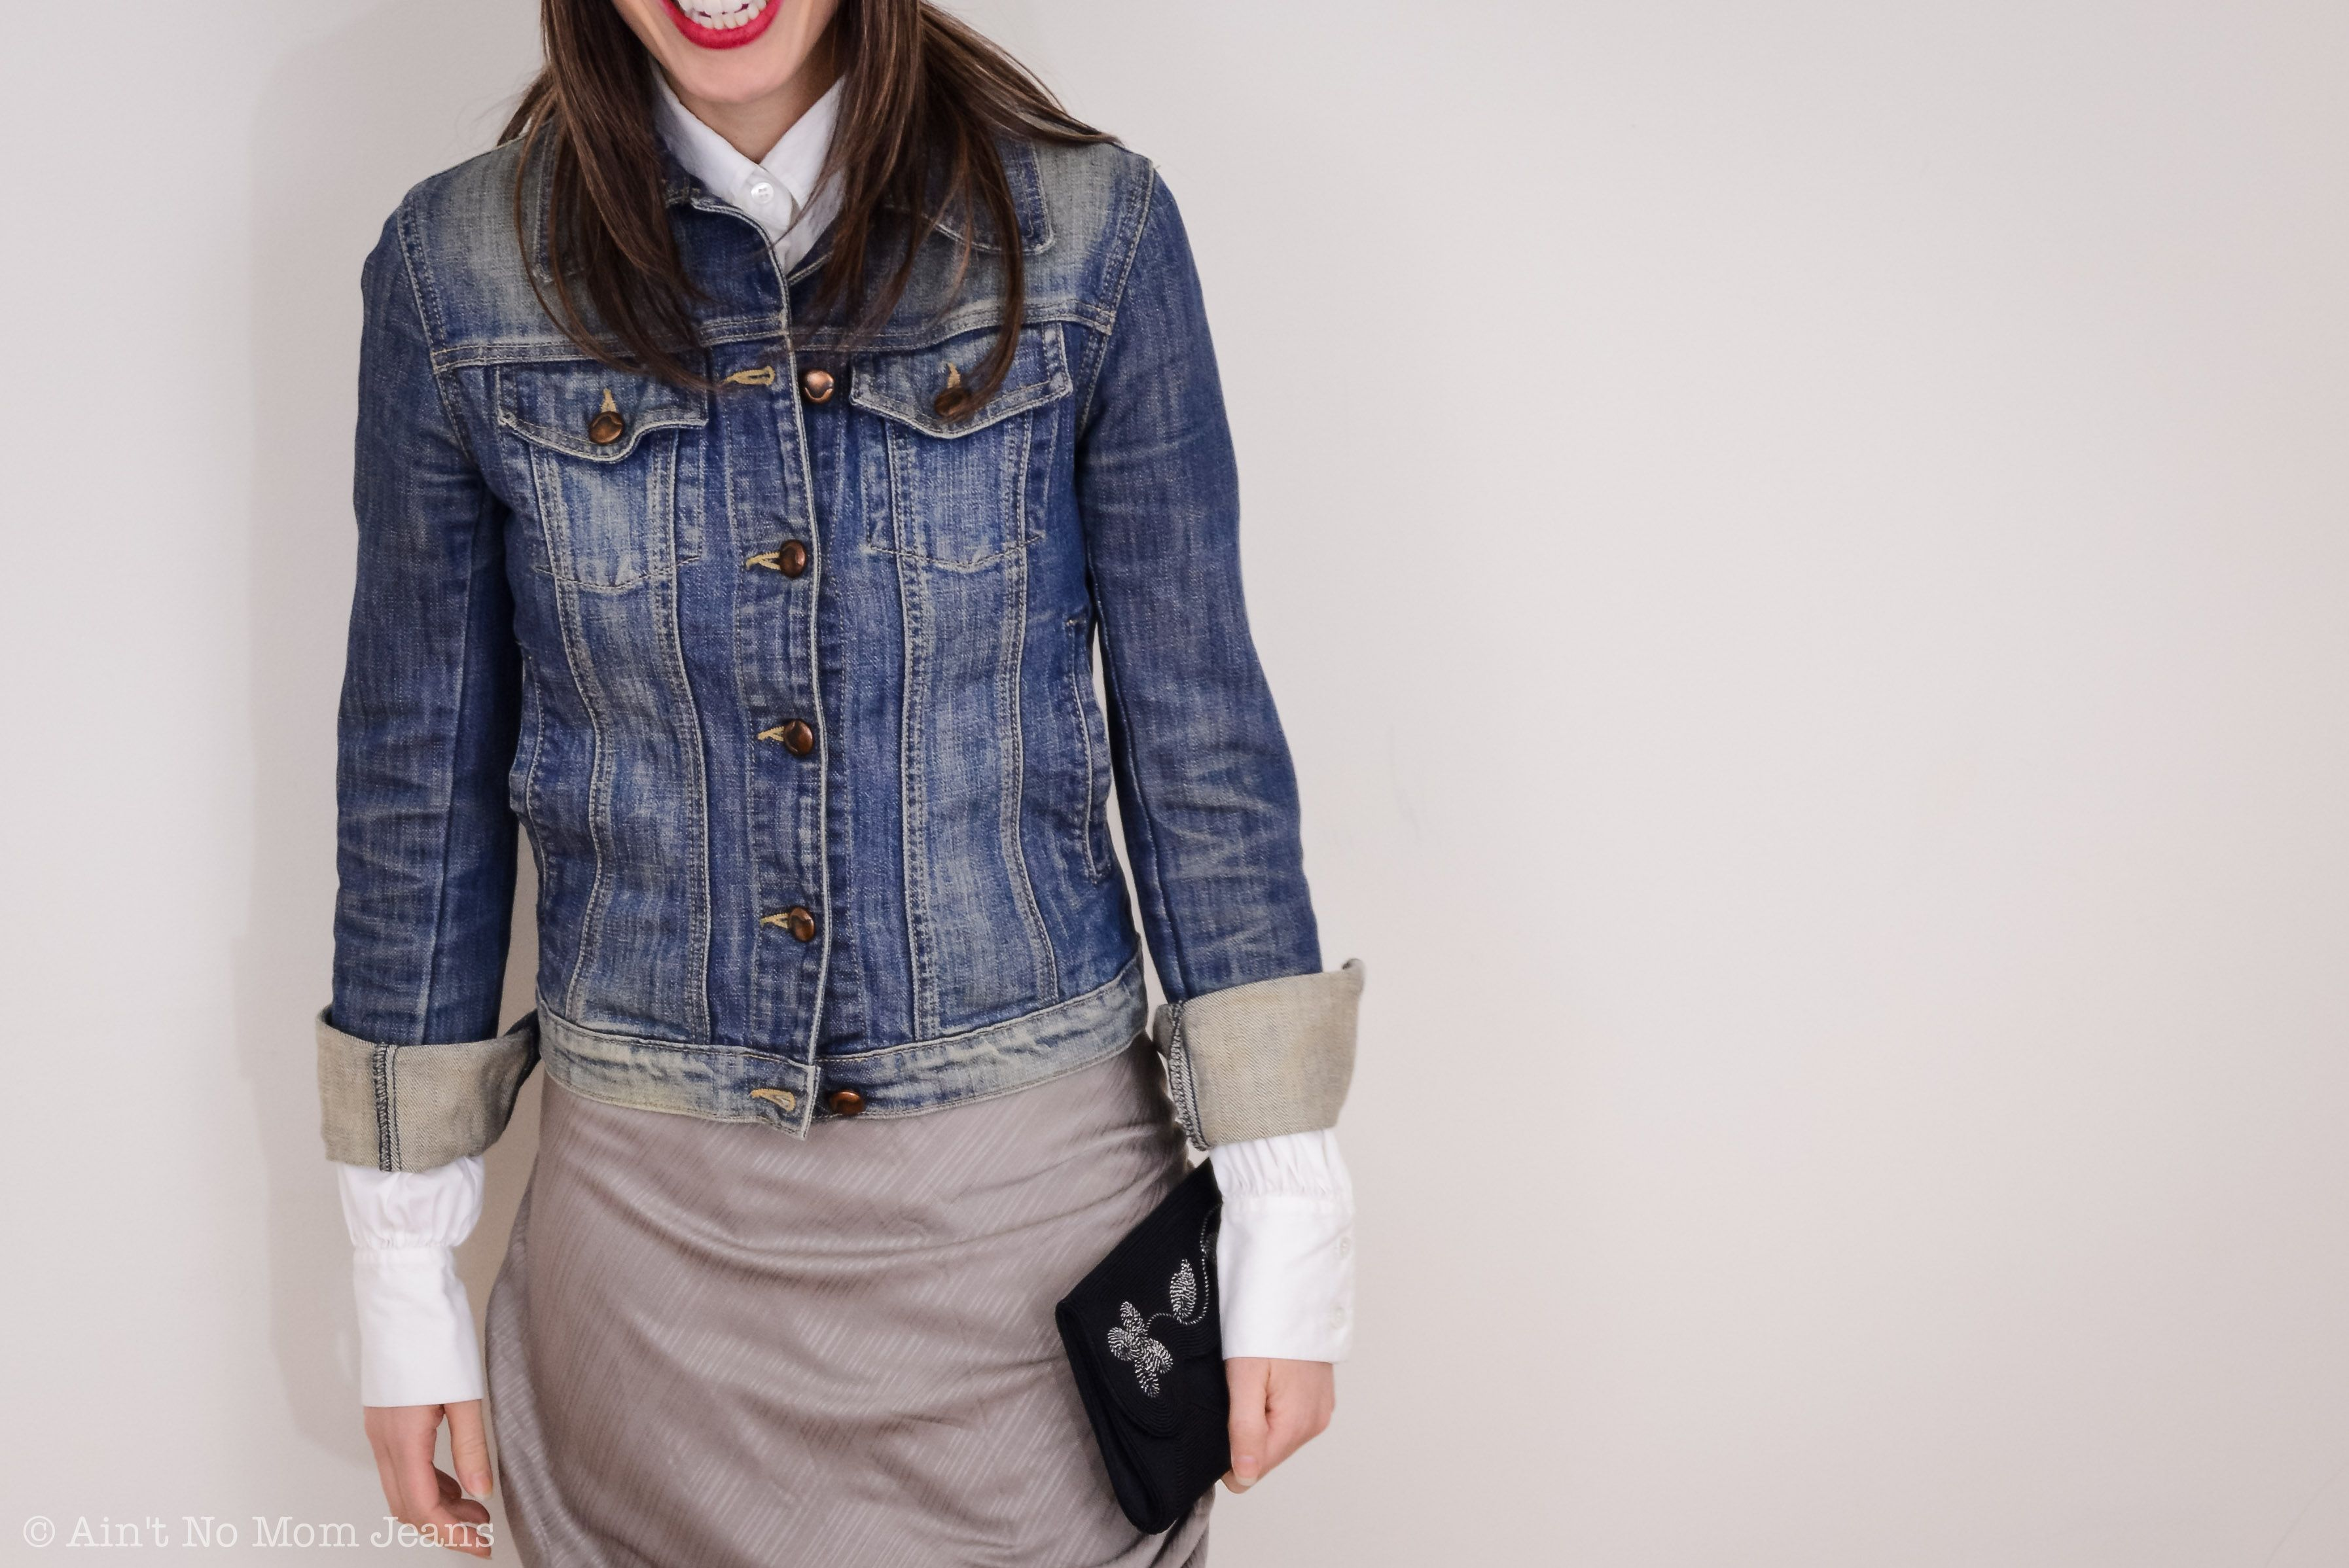 White Shirt Under Denim Jacket From Ain T No Mom Jeans Style